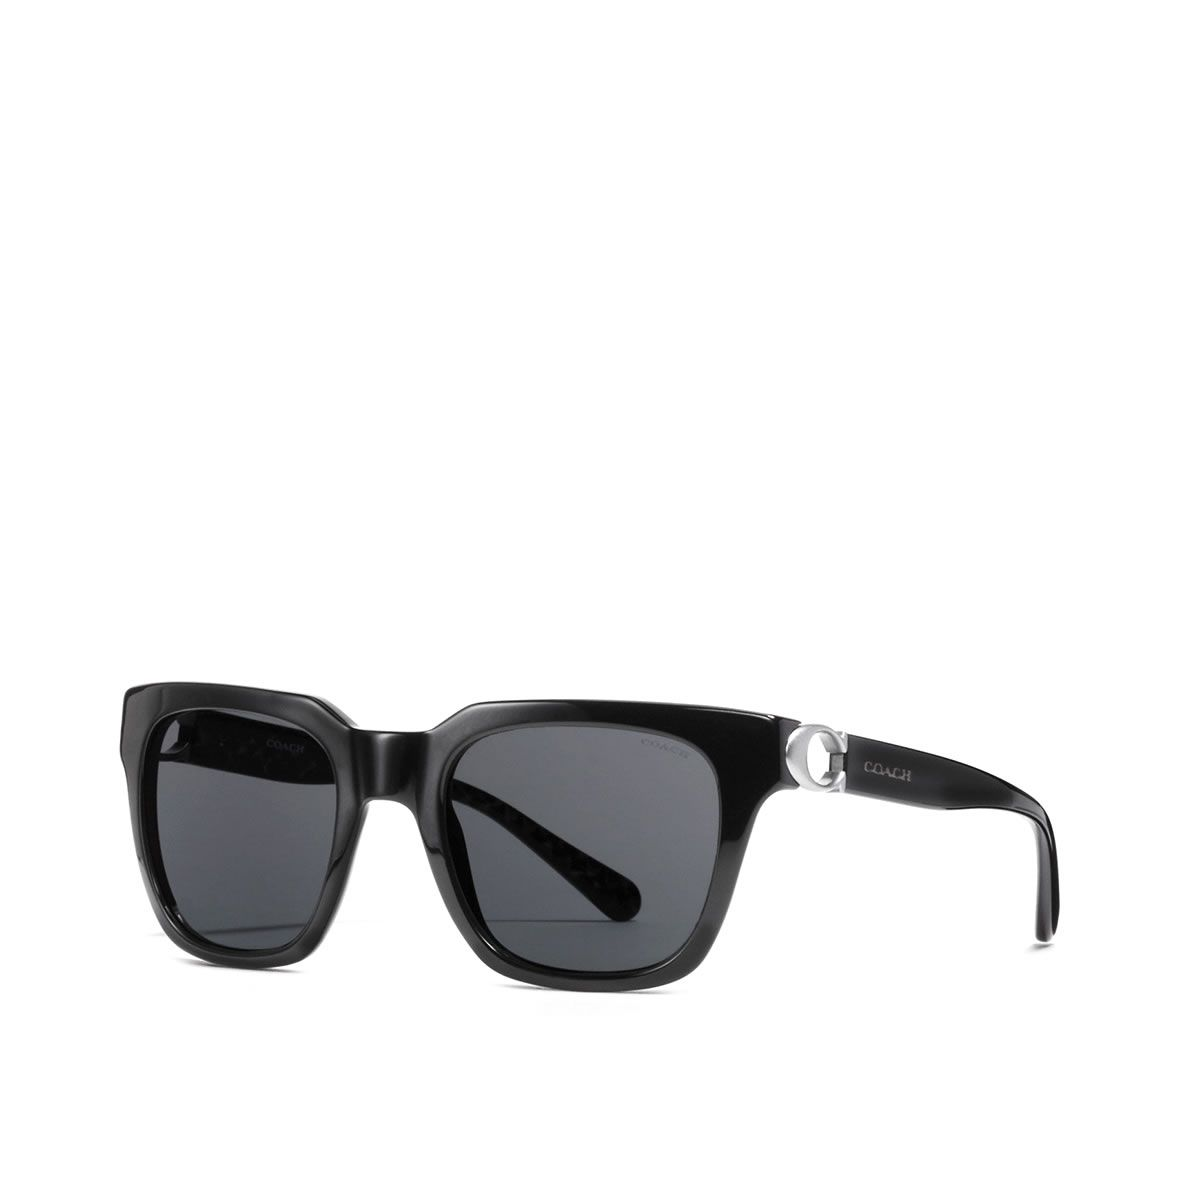 f84df05914d9 COACH Sunglasses - Macy's